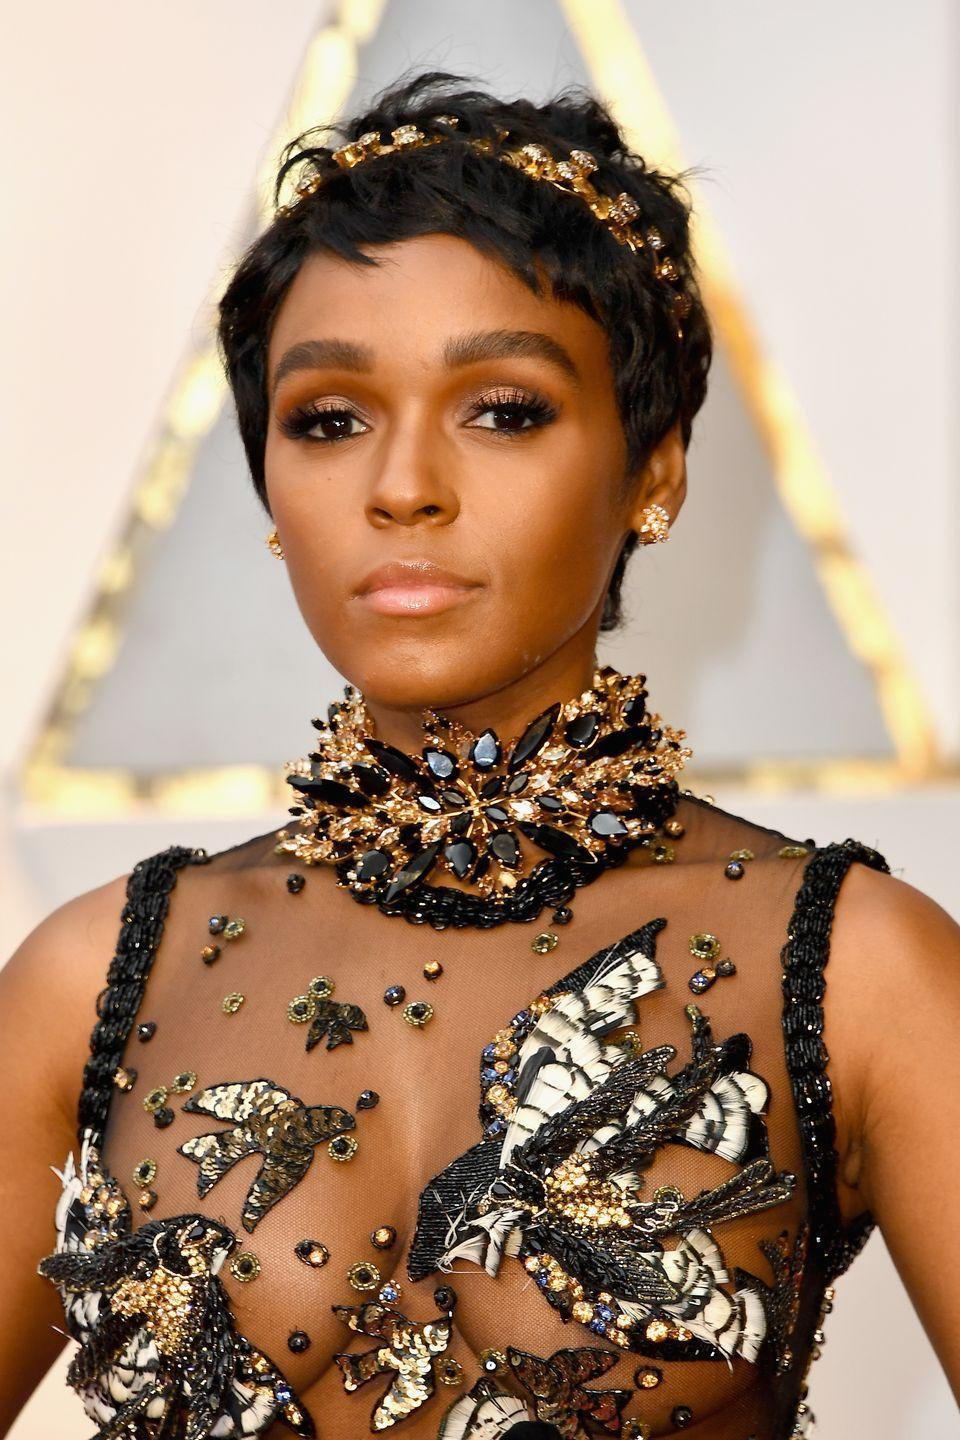 """<p>From hats to safety pins, <strong>Janelle Monae </strong>totally gets how to adorn her tresses with <a href=""""https://www.goodhousekeeping.com/beauty/hair/g30681266/cute-hair-clips-barrettes/"""" rel=""""nofollow noopener"""" target=""""_blank"""" data-ylk=""""slk:hair accessories"""" class=""""link rapid-noclick-resp"""">hair accessories</a>, but this <a href=""""https://www.goodhousekeeping.com/beauty/hair/a26477391/how-to-wear-headband/"""" rel=""""nofollow noopener"""" target=""""_blank"""" data-ylk=""""slk:gilded headband"""" class=""""link rapid-noclick-resp"""">gilded headband</a> is one of our favorites. It's simple, stately and downright gorgeous.</p><p><a class=""""link rapid-noclick-resp"""" href=""""https://www.amazon.com/Goddess-Headband-Costumes-Wedding-Headpiece/dp/B07CVV63W5/?tag=syn-yahoo-20&ascsubtag=%5Bartid%7C10055.g.35472268%5Bsrc%7Cyahoo-us"""" rel=""""nofollow noopener"""" target=""""_blank"""" data-ylk=""""slk:SHOP GILDED HEADBAND"""">SHOP GILDED HEADBAND</a></p>"""